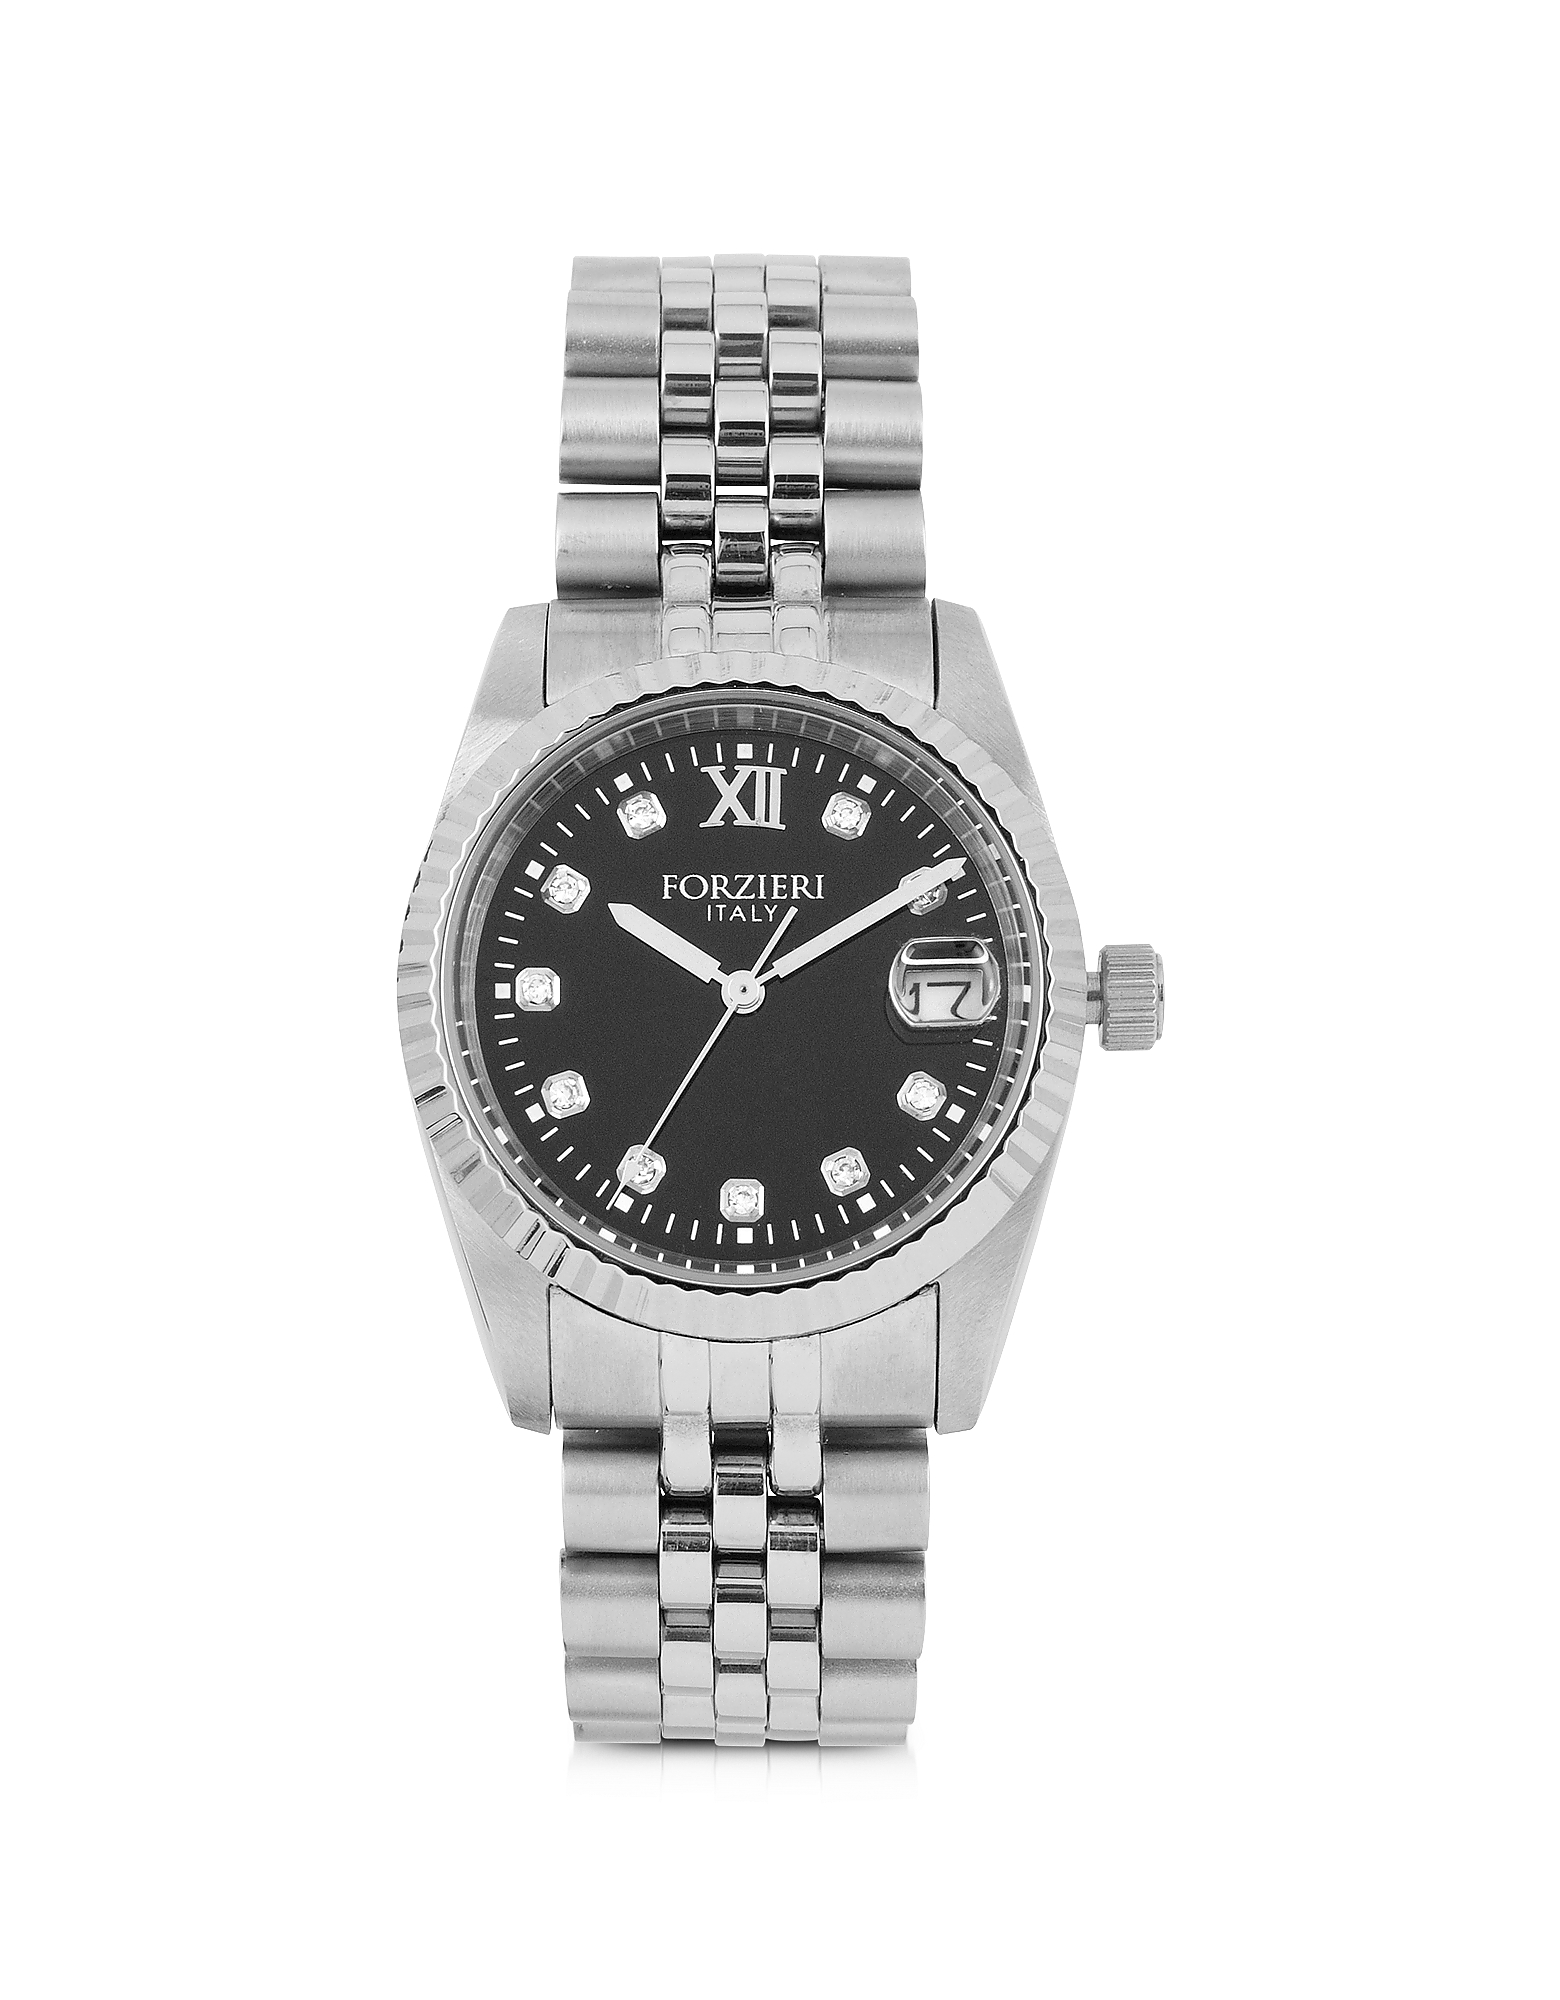 Forzieri Women's Watches, Trevi Silver Tone Stainless Steel Women's Watch